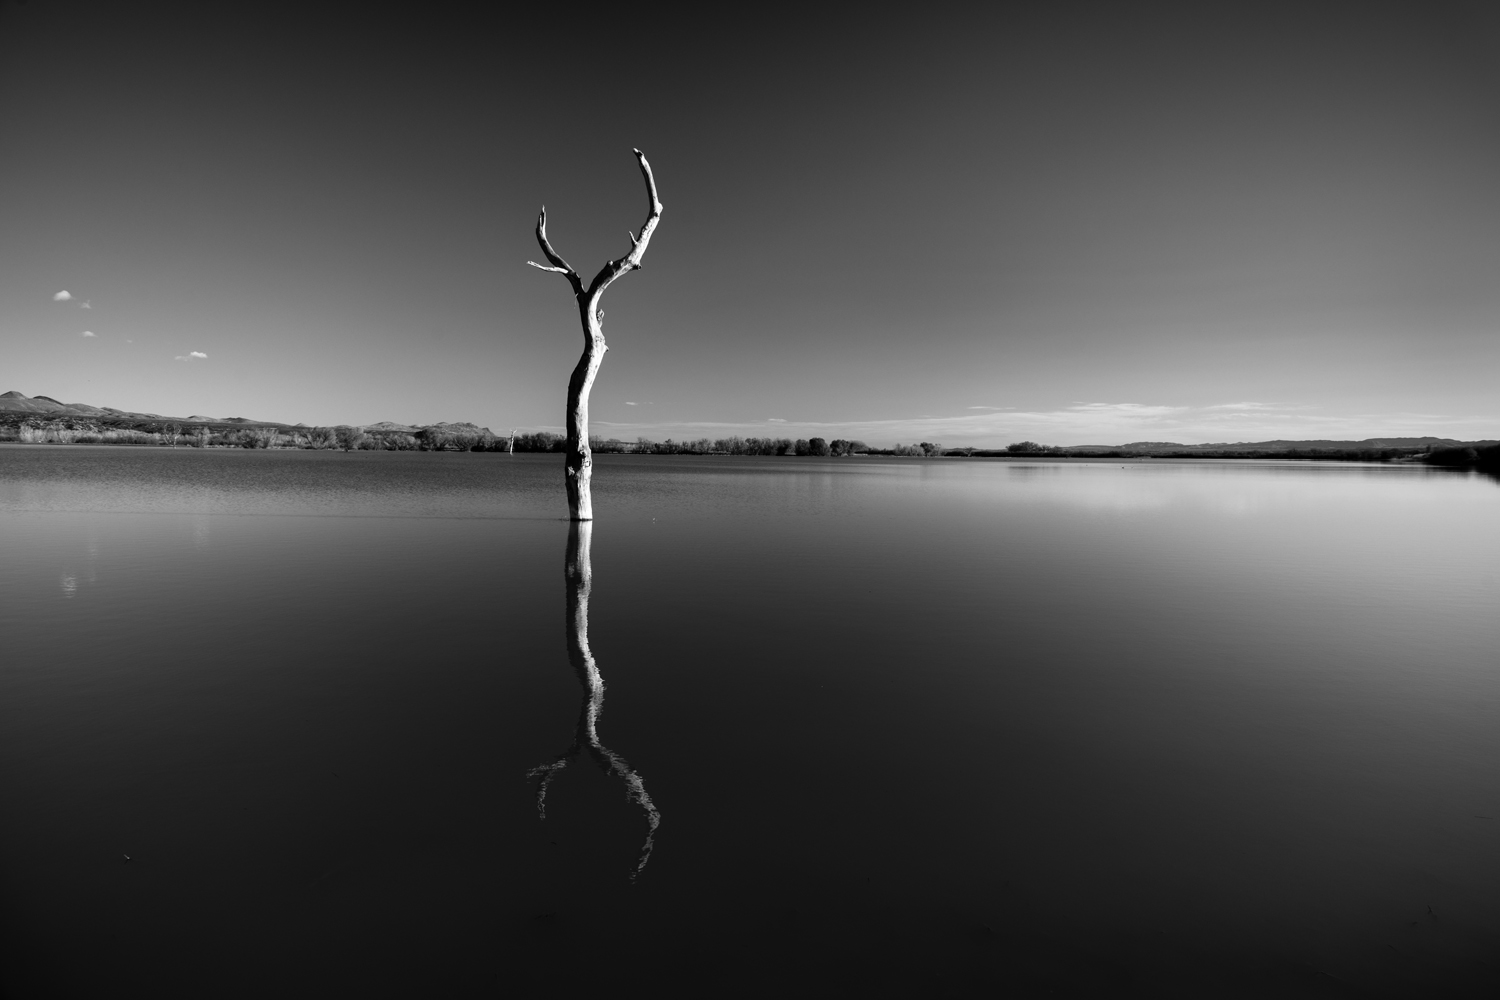 Tree Reflection in Lake